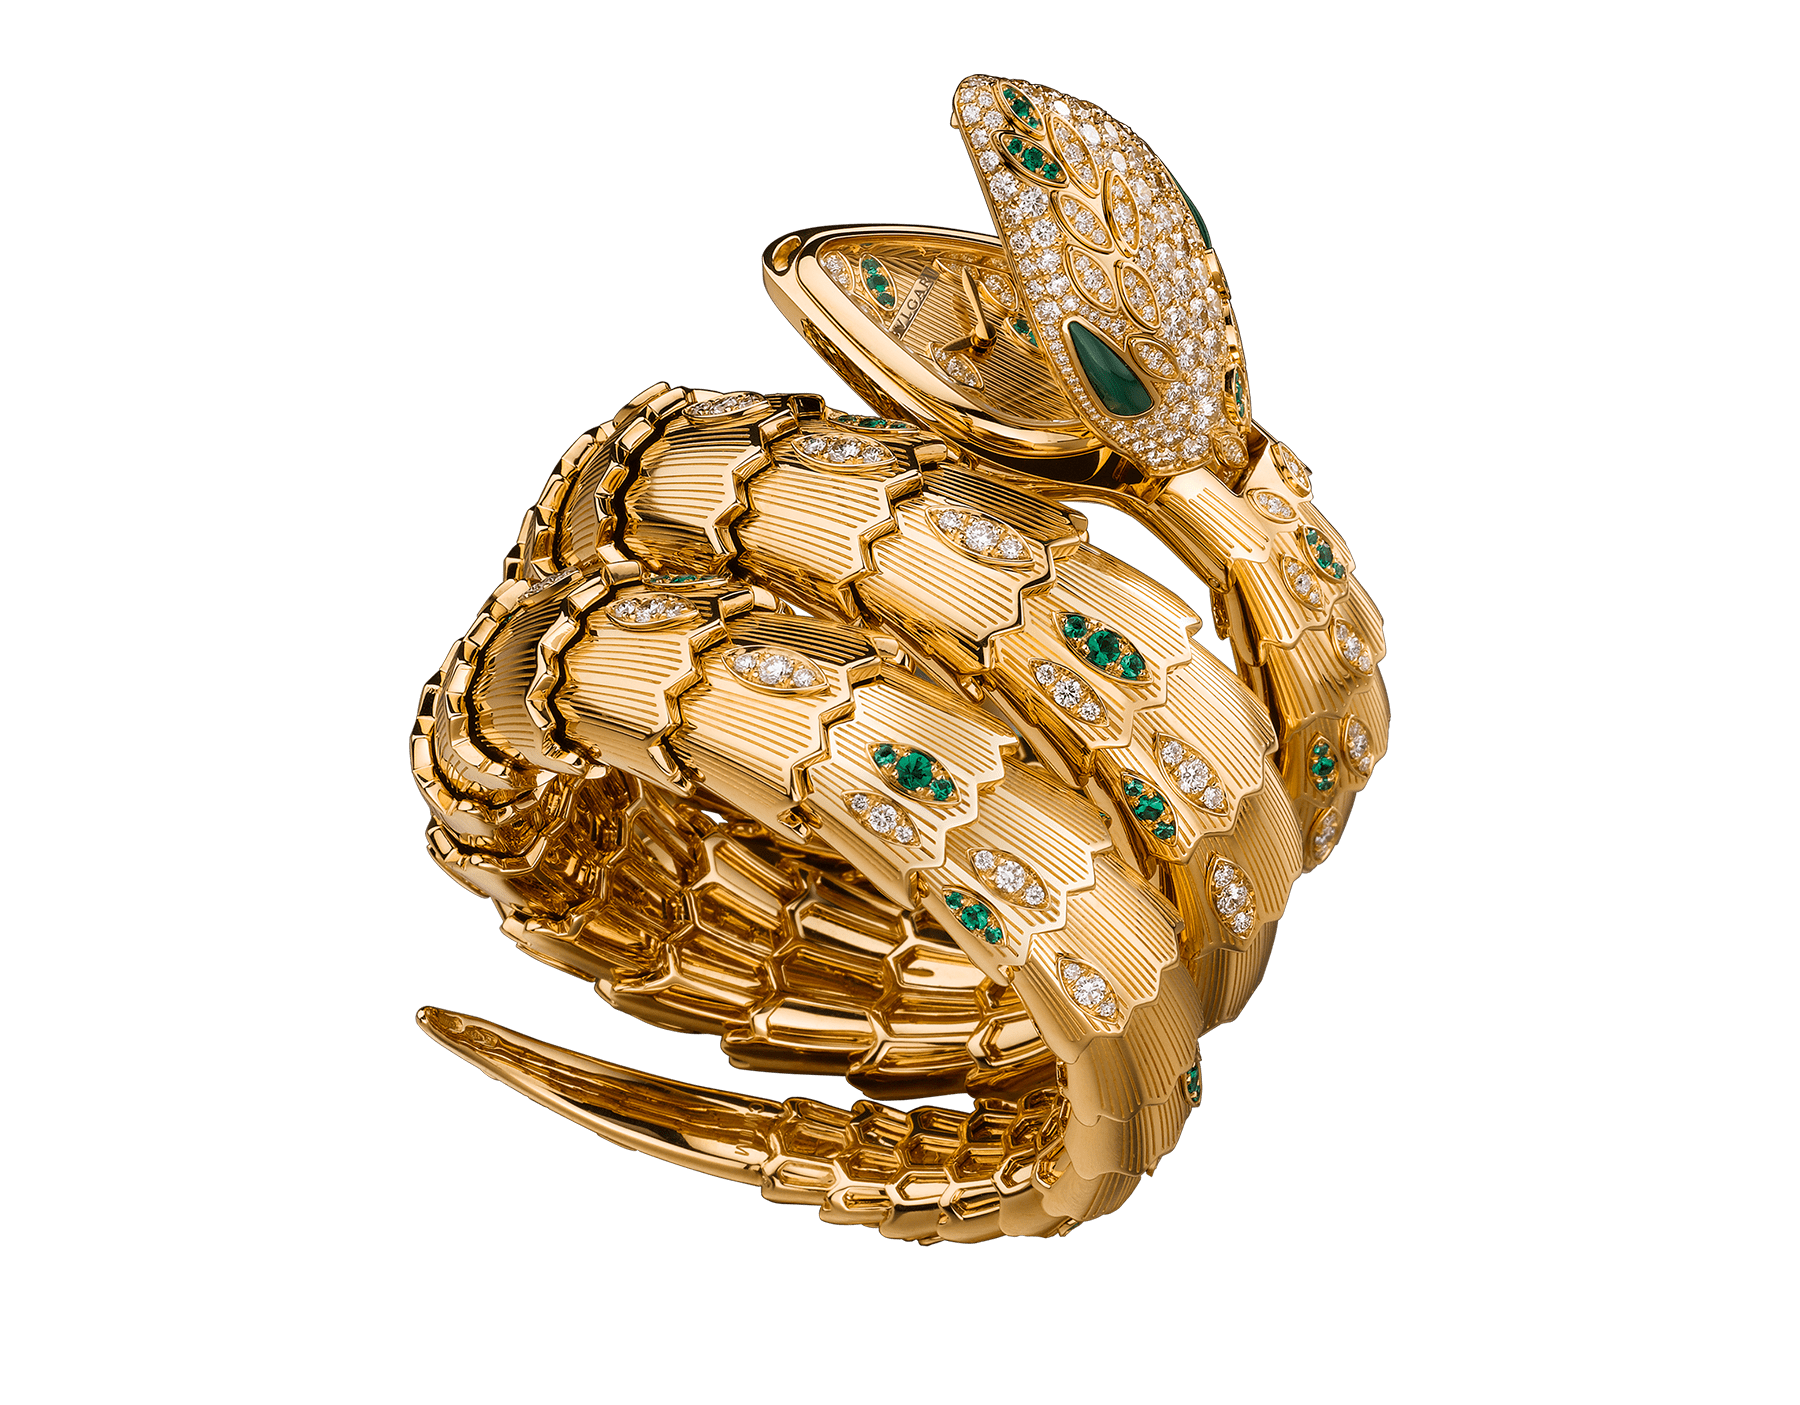 Serpenti Secret Watch with 18 kt yellow gold head set with brilliant cut diamonds, brilliant cut emeralds and malachite eyes, 18 kt yellow gold case, 18 kt yellow gold dial and double spiral bracelet, both set with brilliant cut diamonds and brilliant cut emeralds. 101999 image 1